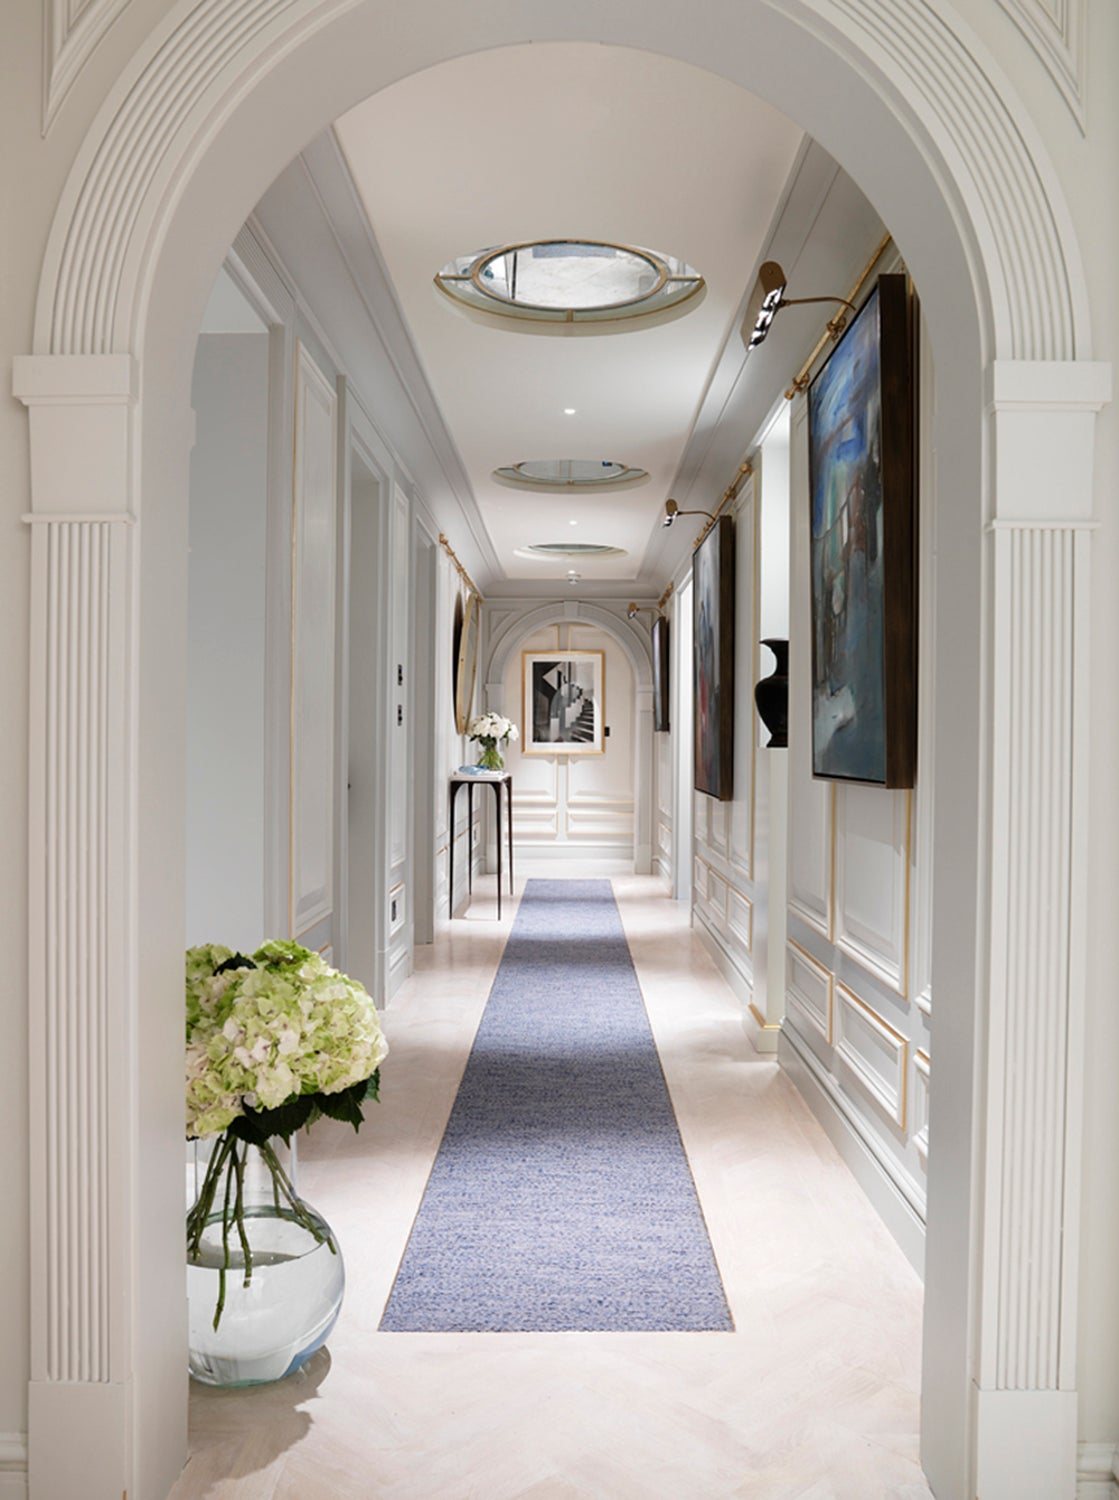 apartment corridors ideas - 736×987